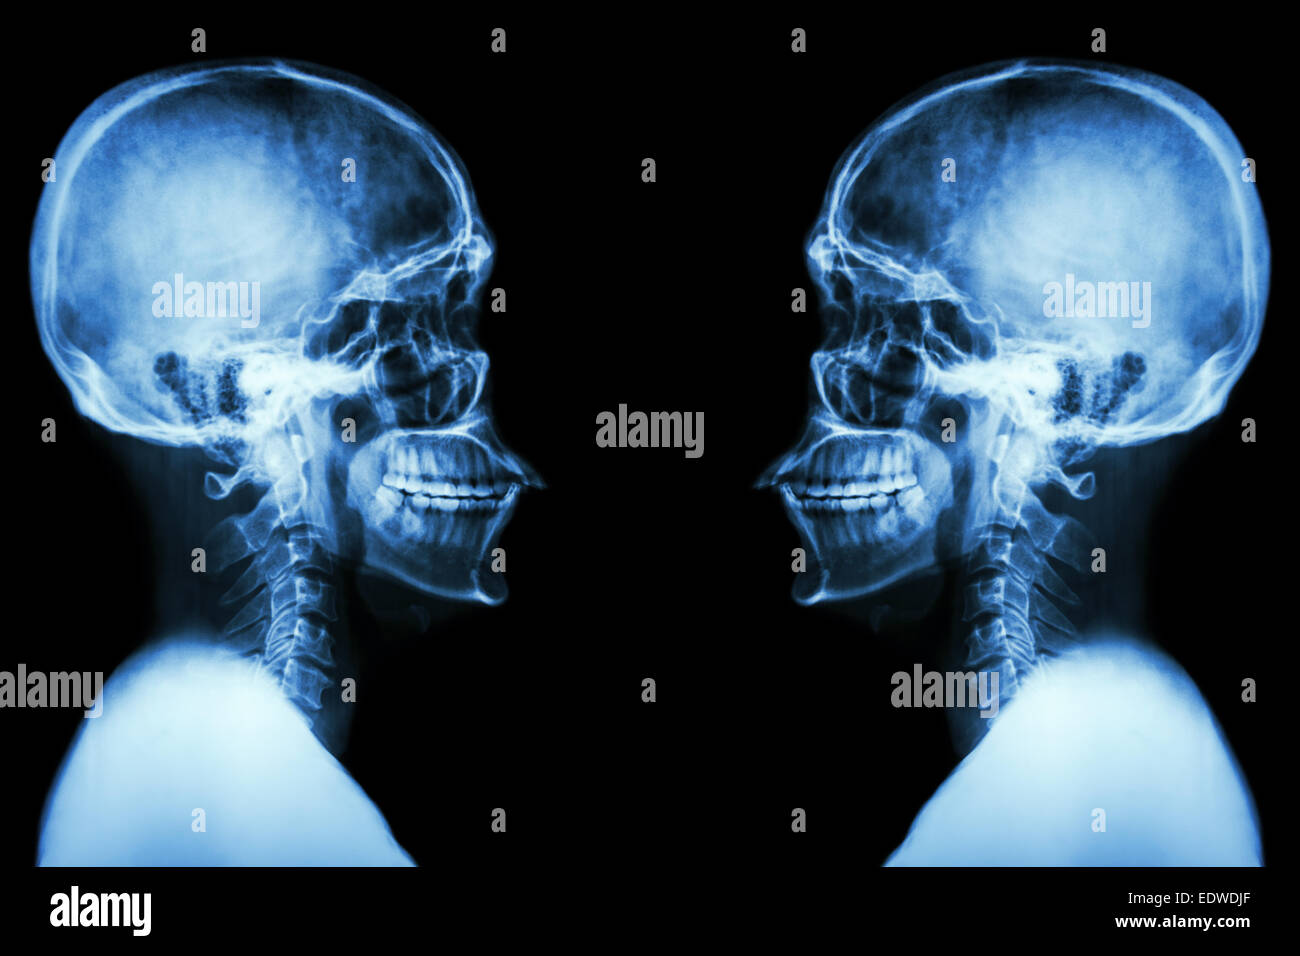 X-ray Skull and cervical spine - Stock Image